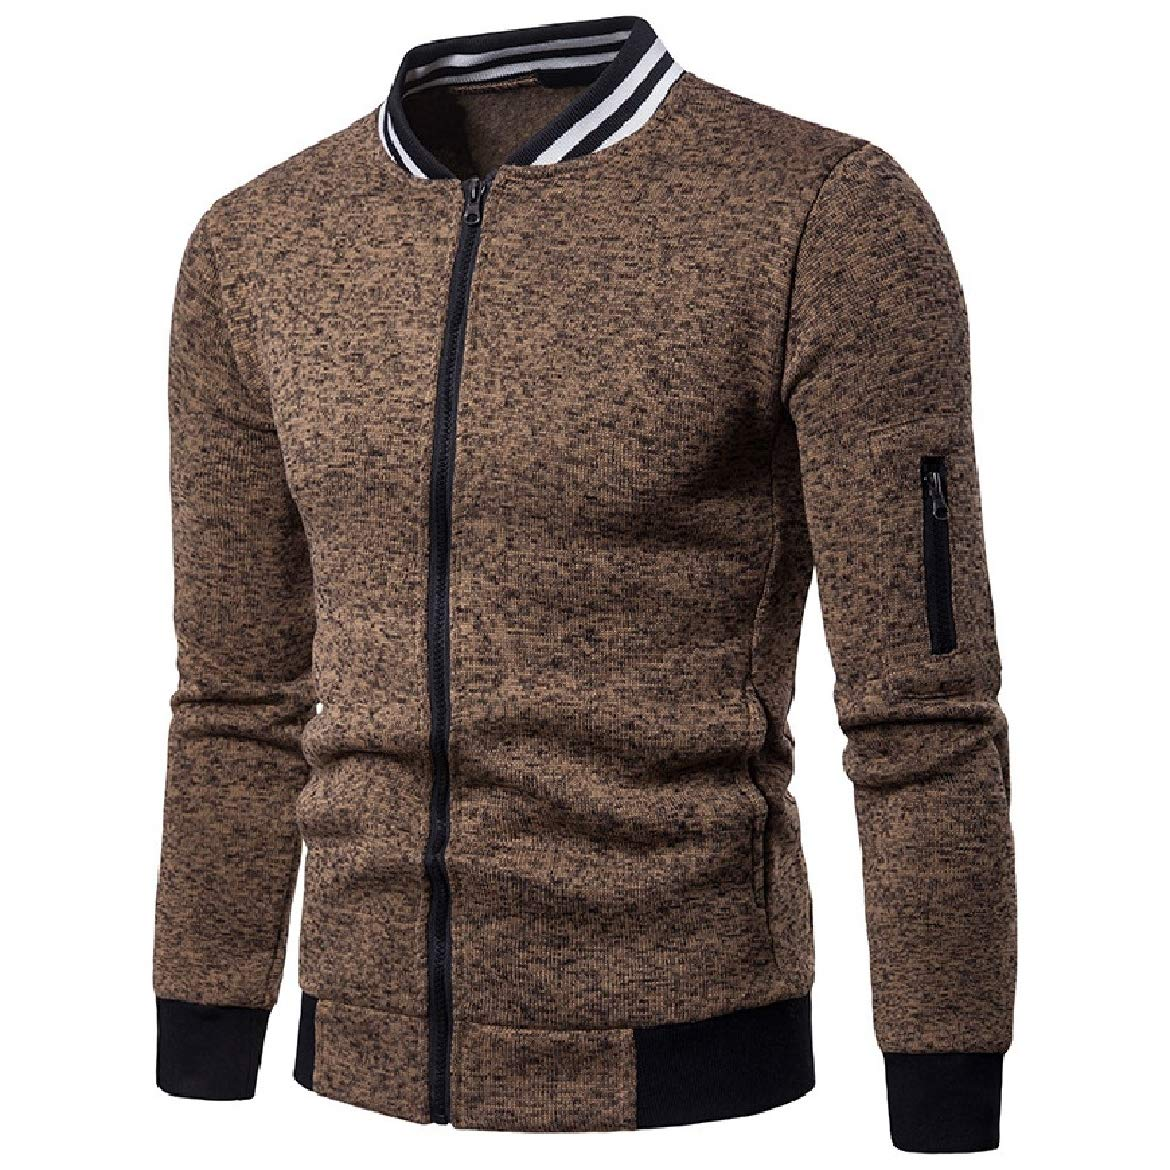 Sayah Mens Stripes Fall Winter Stand Collar Contrast Color Jackets Full-Zip Outwear